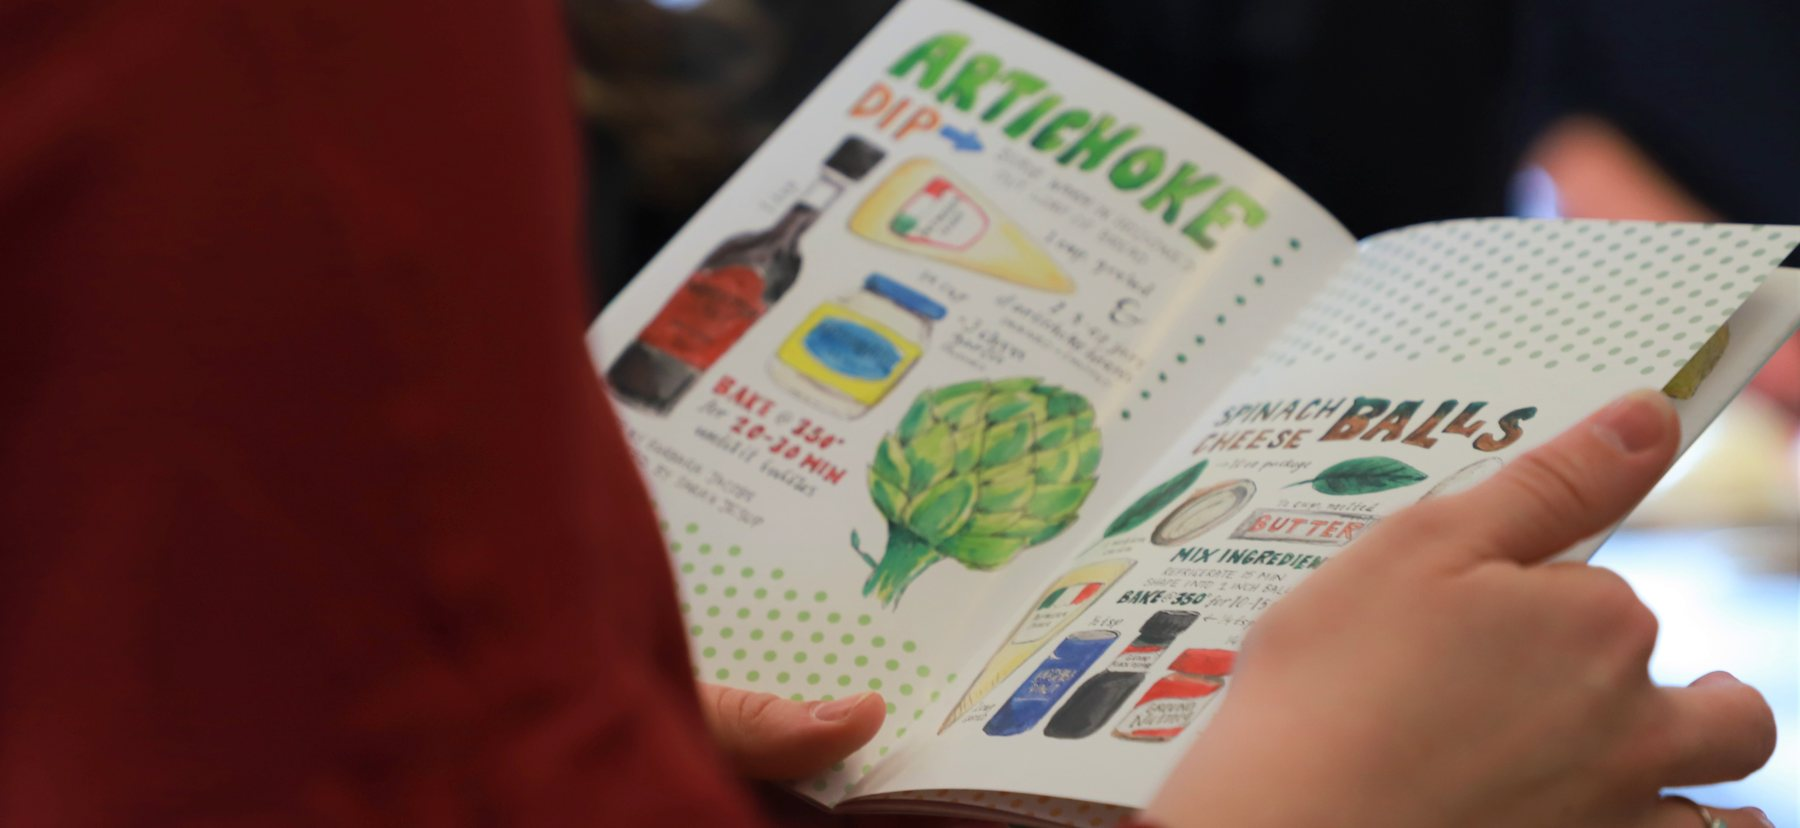 A person views an illustrated recipe for artichoke dip